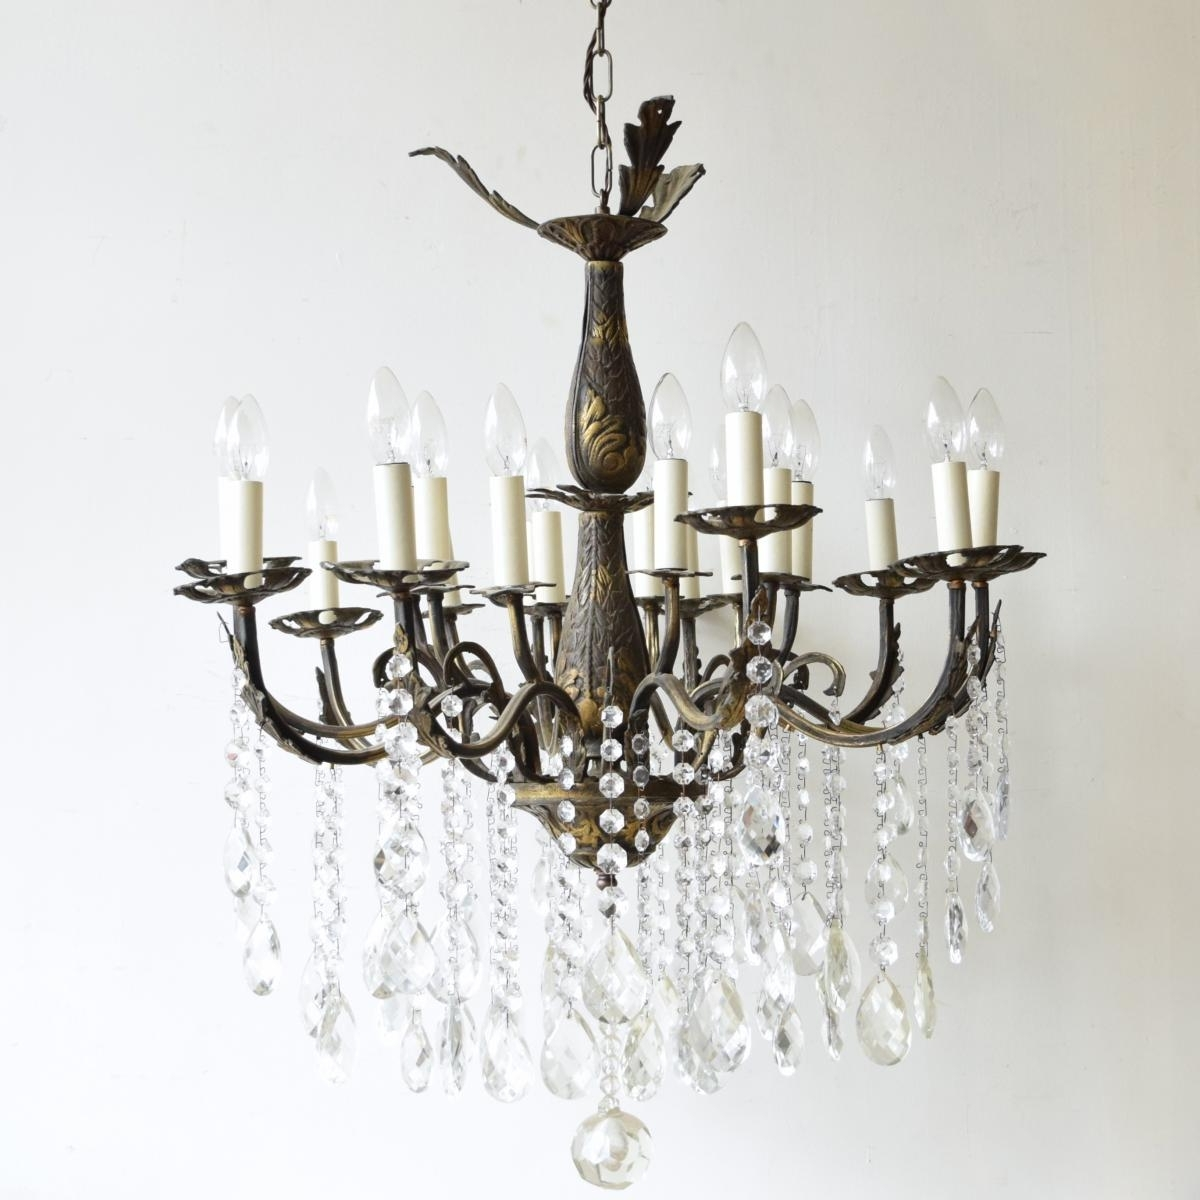 Large Vintage French 16 Light Brass Chandelier For Sale At Pamono Regarding Well Known Vintage French Chandeliers (View 13 of 20)